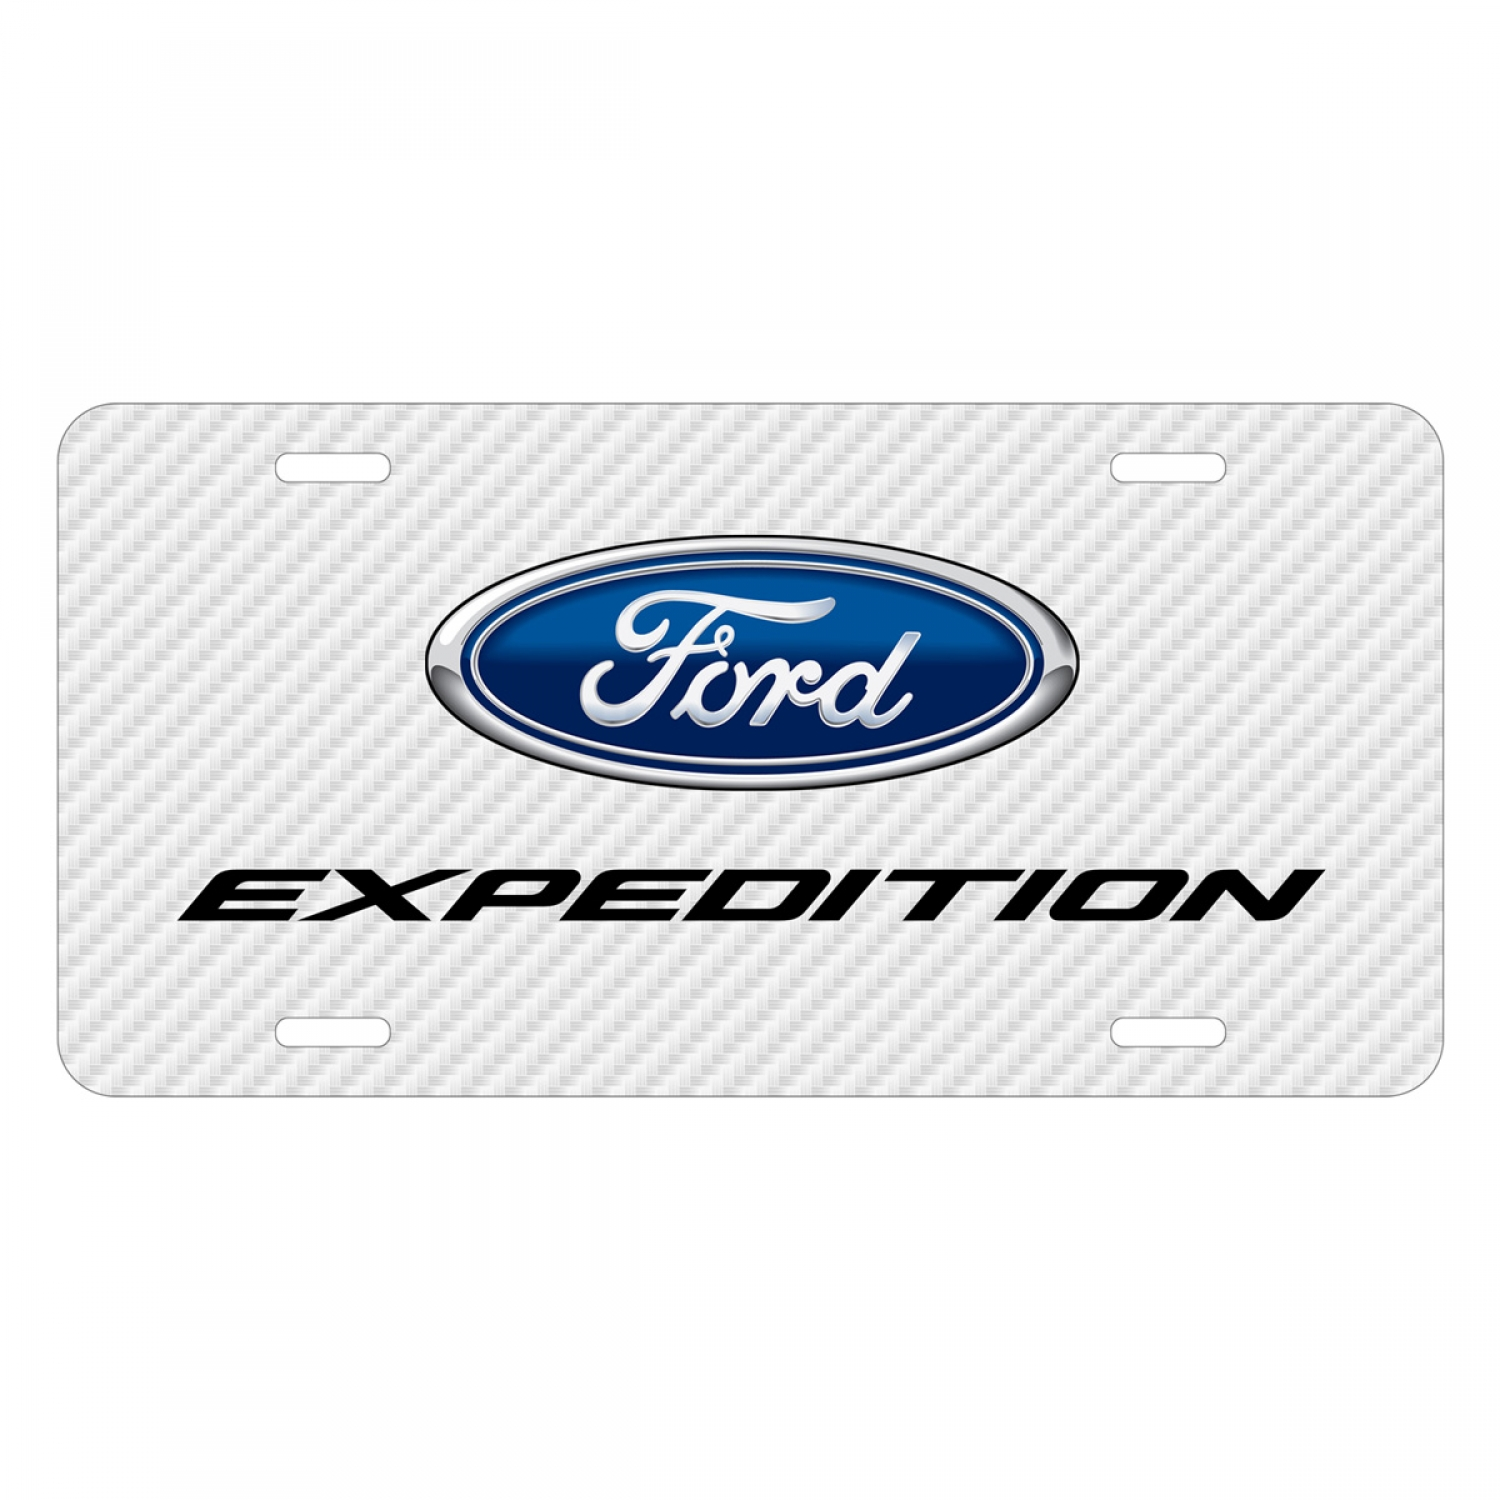 Ford Expedition White Carbon Fiber Texture Graphic UV Metal License Plate